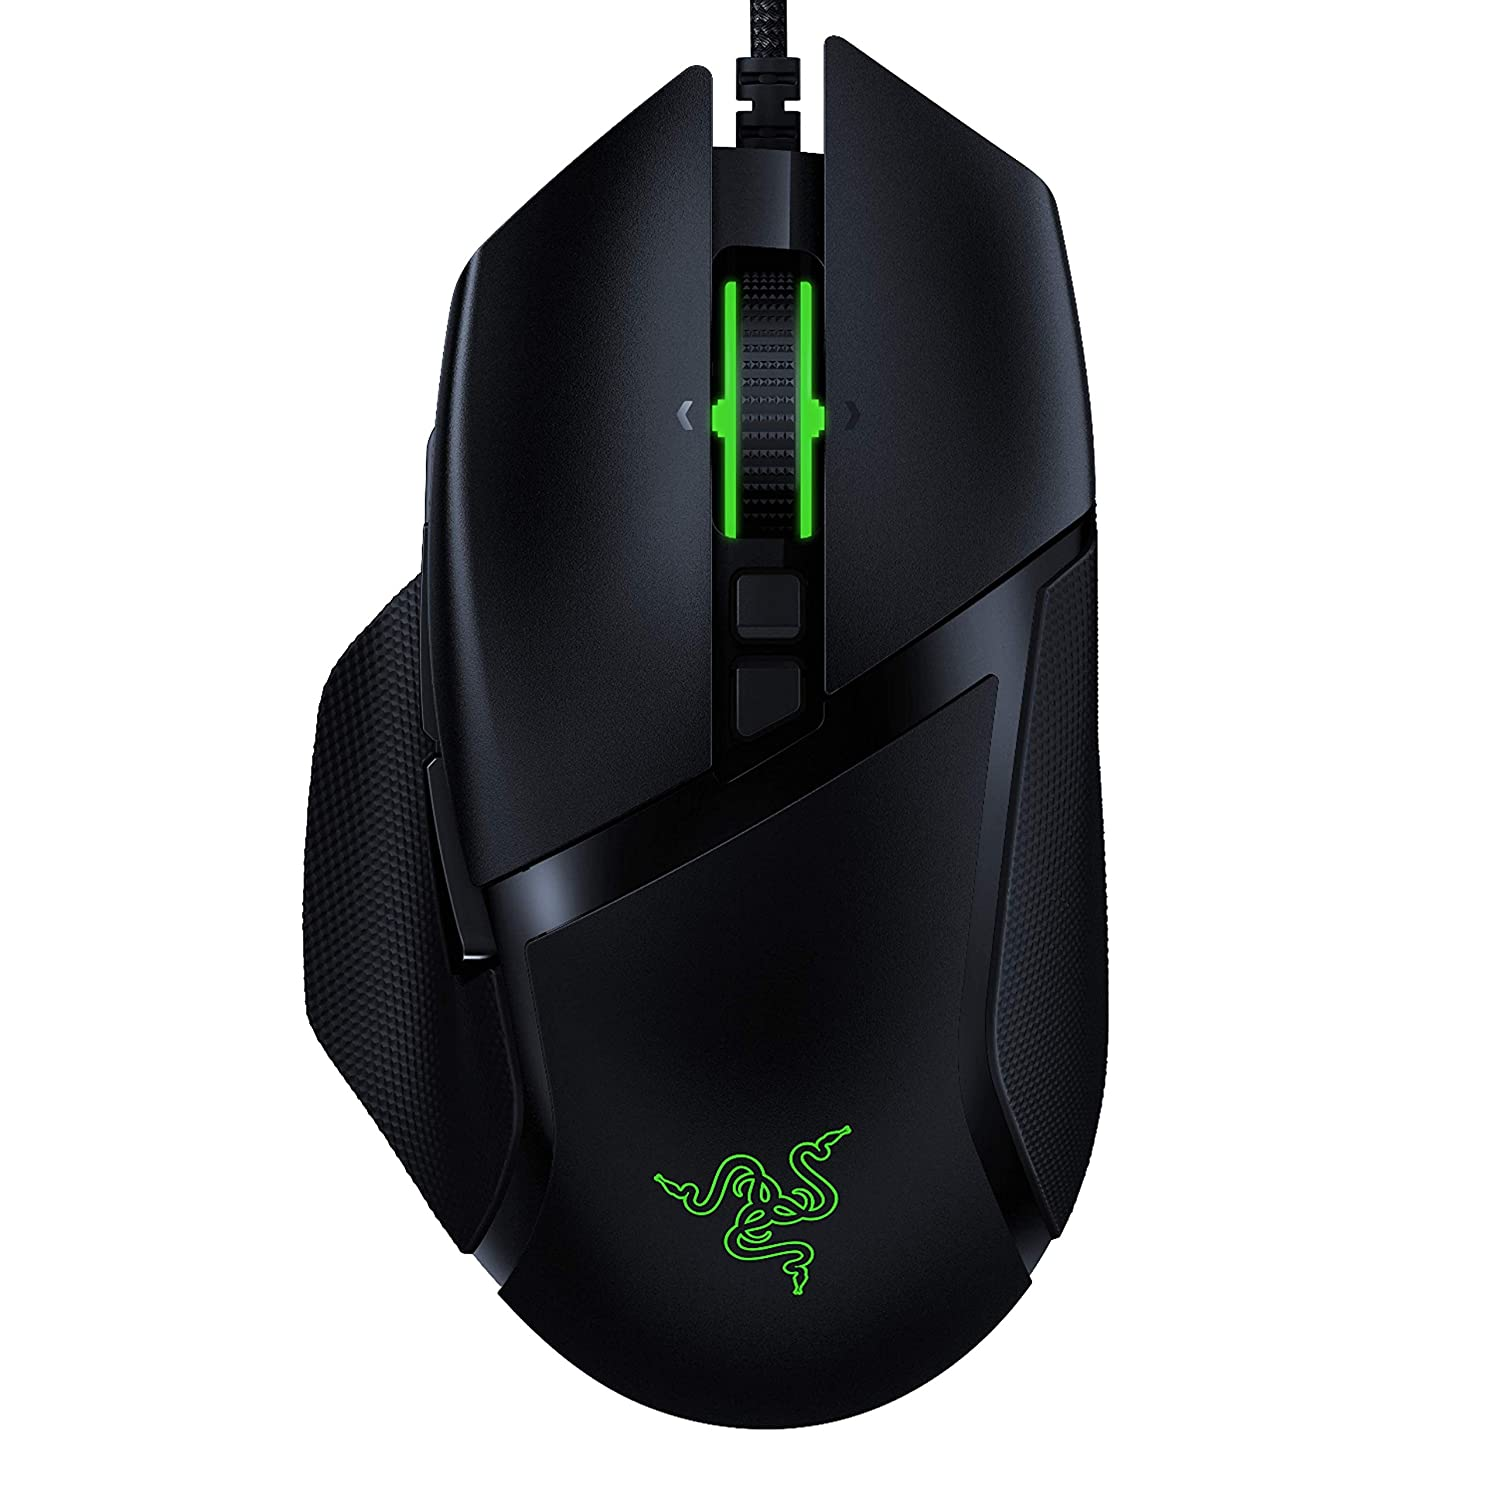 Razer Basilisk v2 best gaming mouse